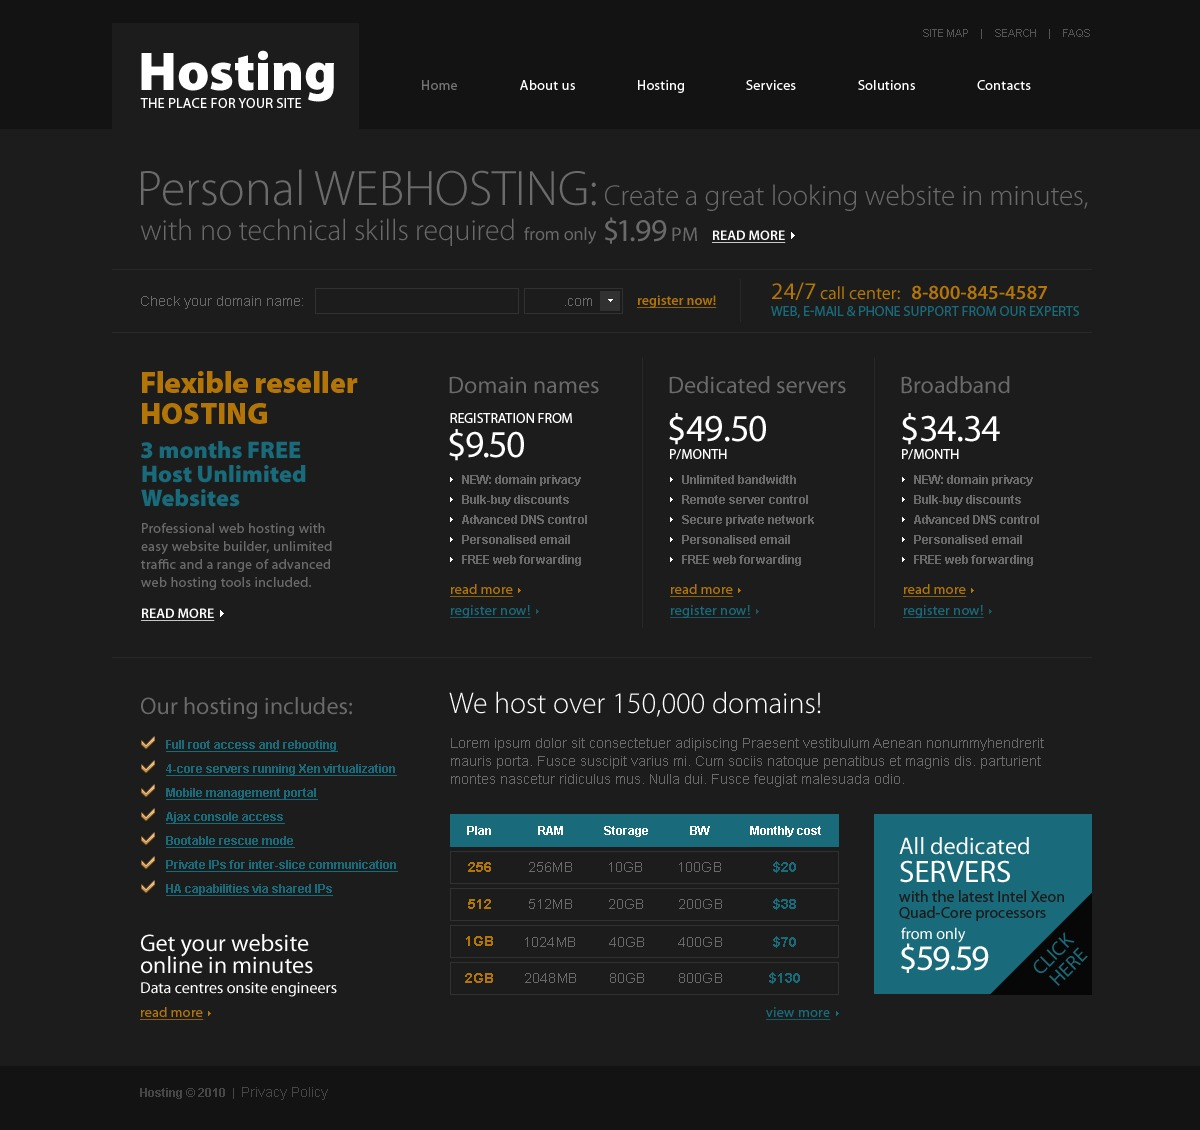 The Hosting Company Solution PSD Design 54368, one of the best PSD templates of its kind (hosting, wide), also known as hosting company solution PSD template, domain PSD template, services PSD template, beginner PSD template, plan PSD template, standard PSD template, advanced PSD template, dedicated PSD template, workteam PSD template, tools PSD template, special offer PSD template, server PSD template, monitoring PSD template, management PSD template, account PSD template, activation PSD template, client PSD template, technology solution PSD template, data center provider PSD template, traffic PSD template, internet PSD template, web IT processor PSD template, spa and related with hosting company solution, domain, services, beginner, plan, standard, advanced, dedicated, workteam, tools, special offer, server, monitoring, management, account, activation, client, technology solution, data center provider, traffic, internet, web IT processor, spa, etc.